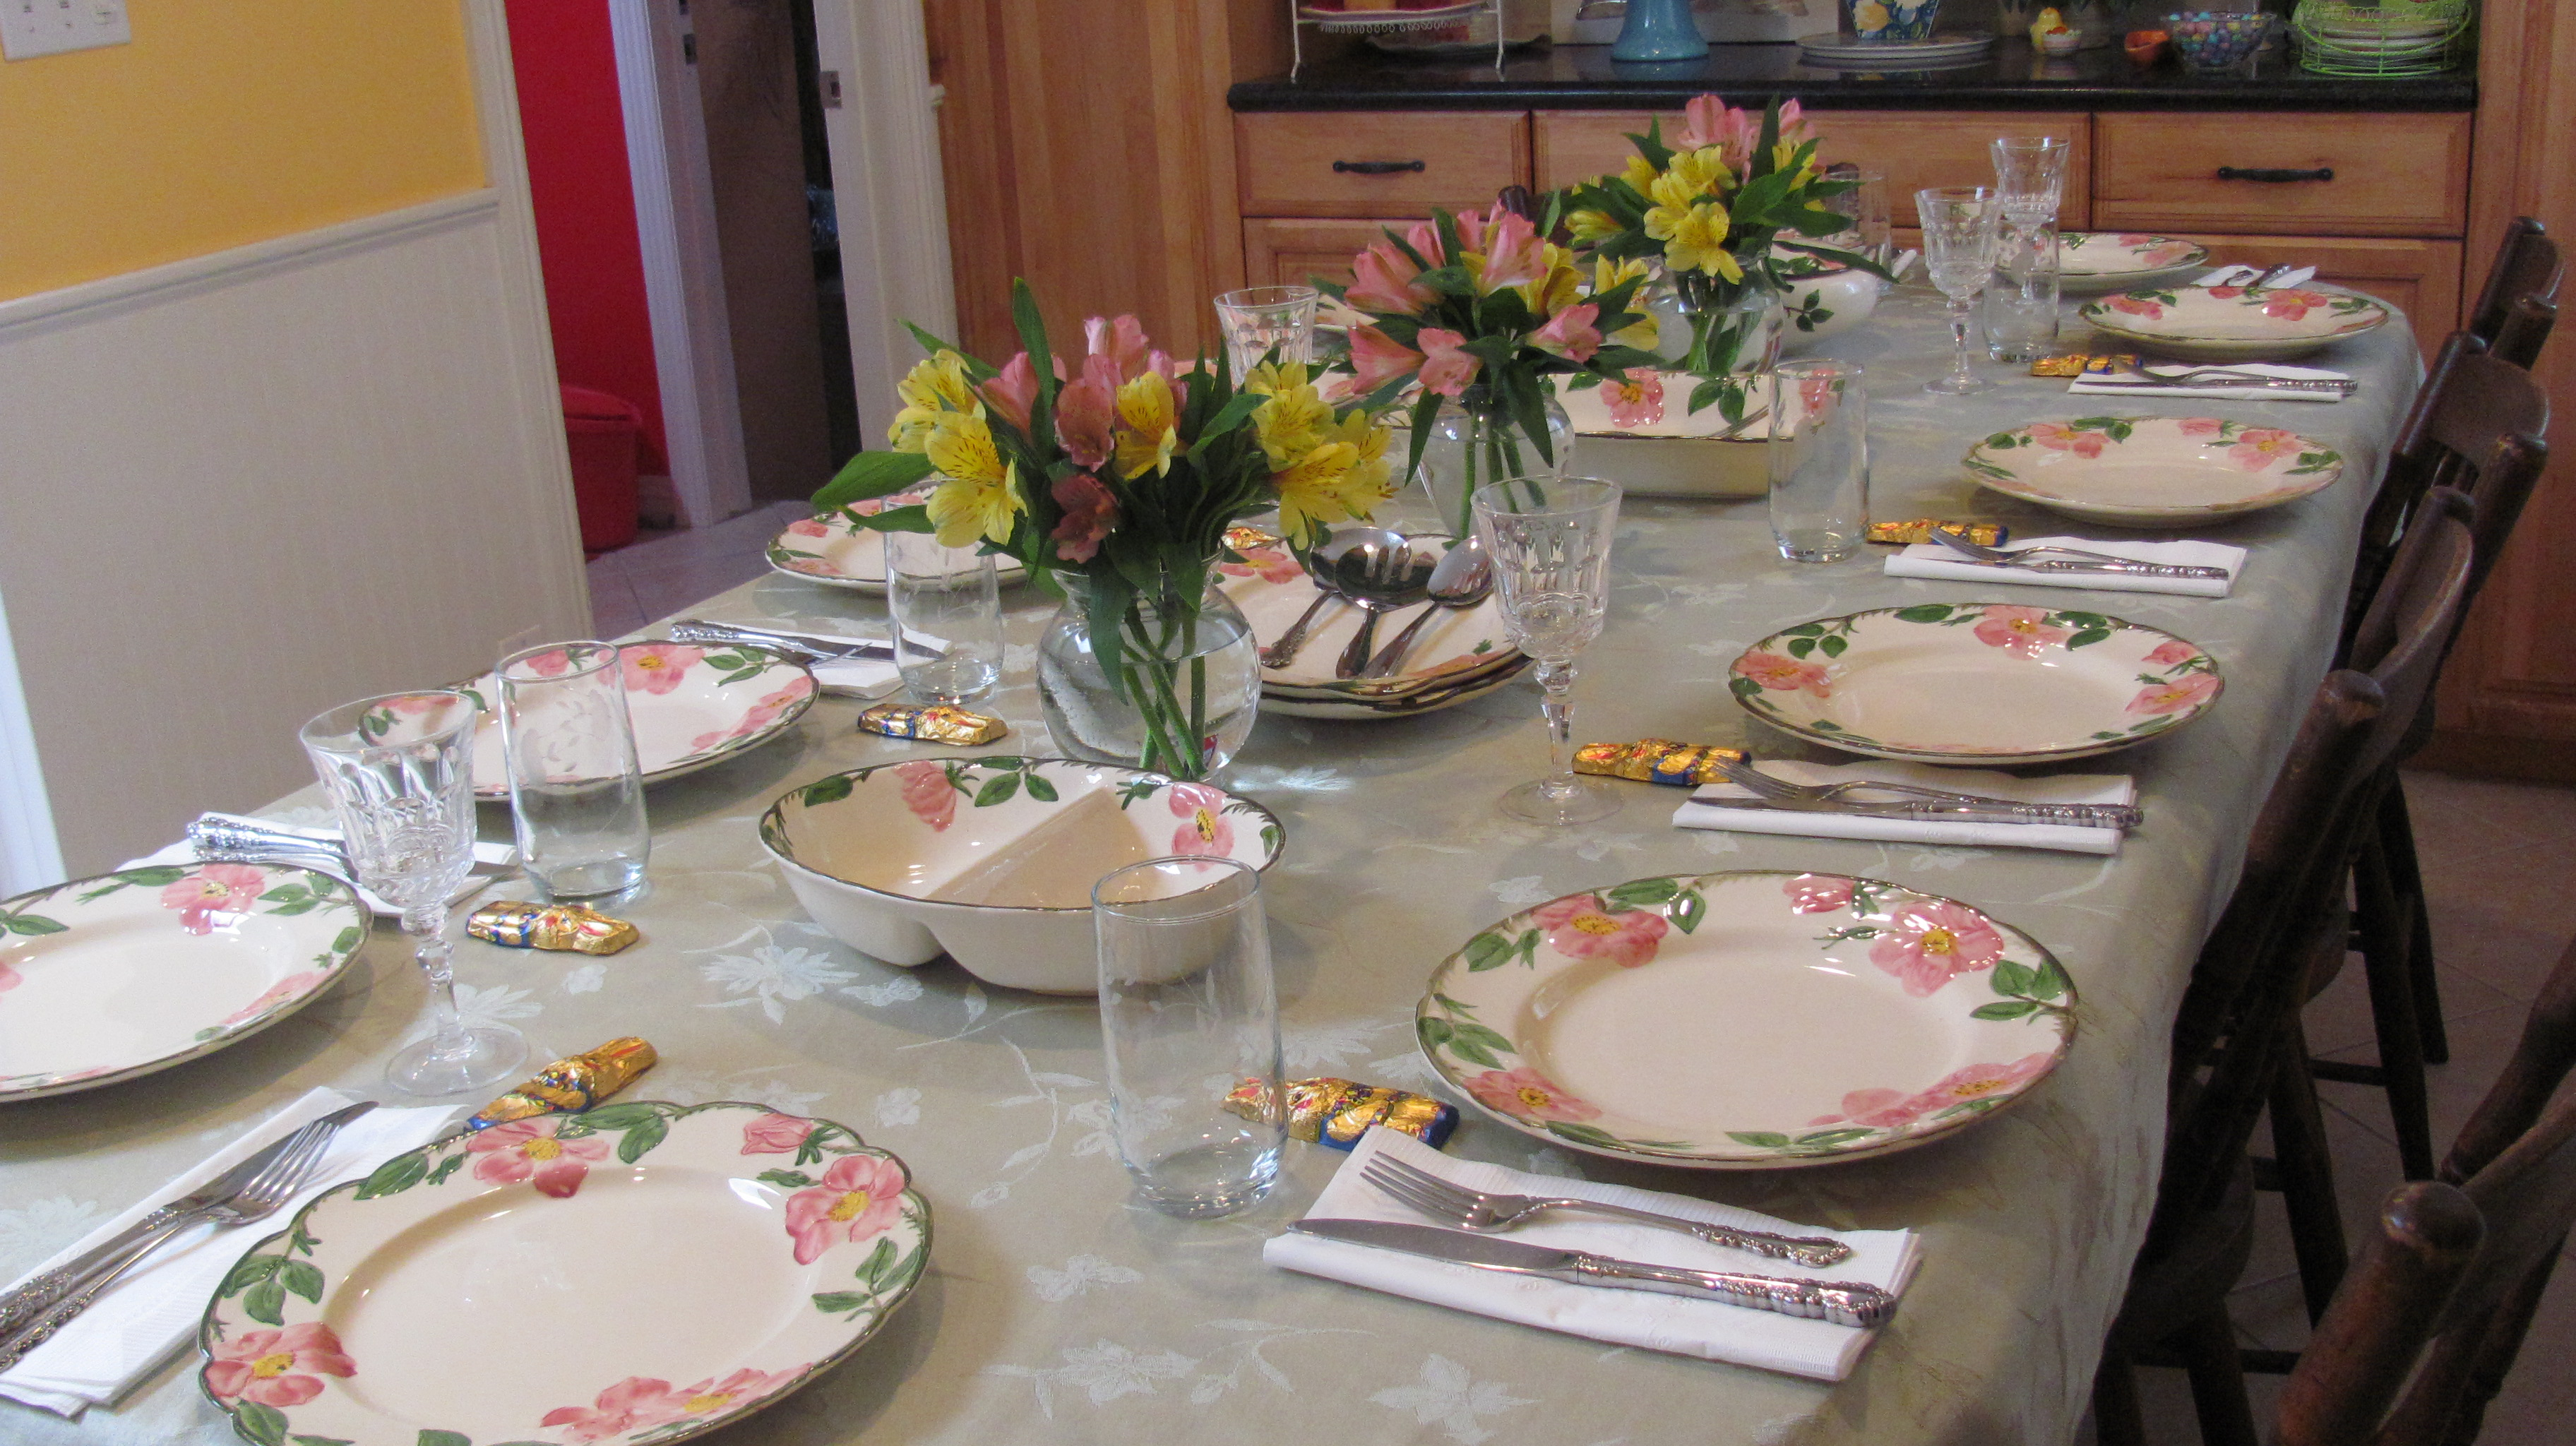 Easter table setting multi cultural cooking network - Easter table decorations meals special ...